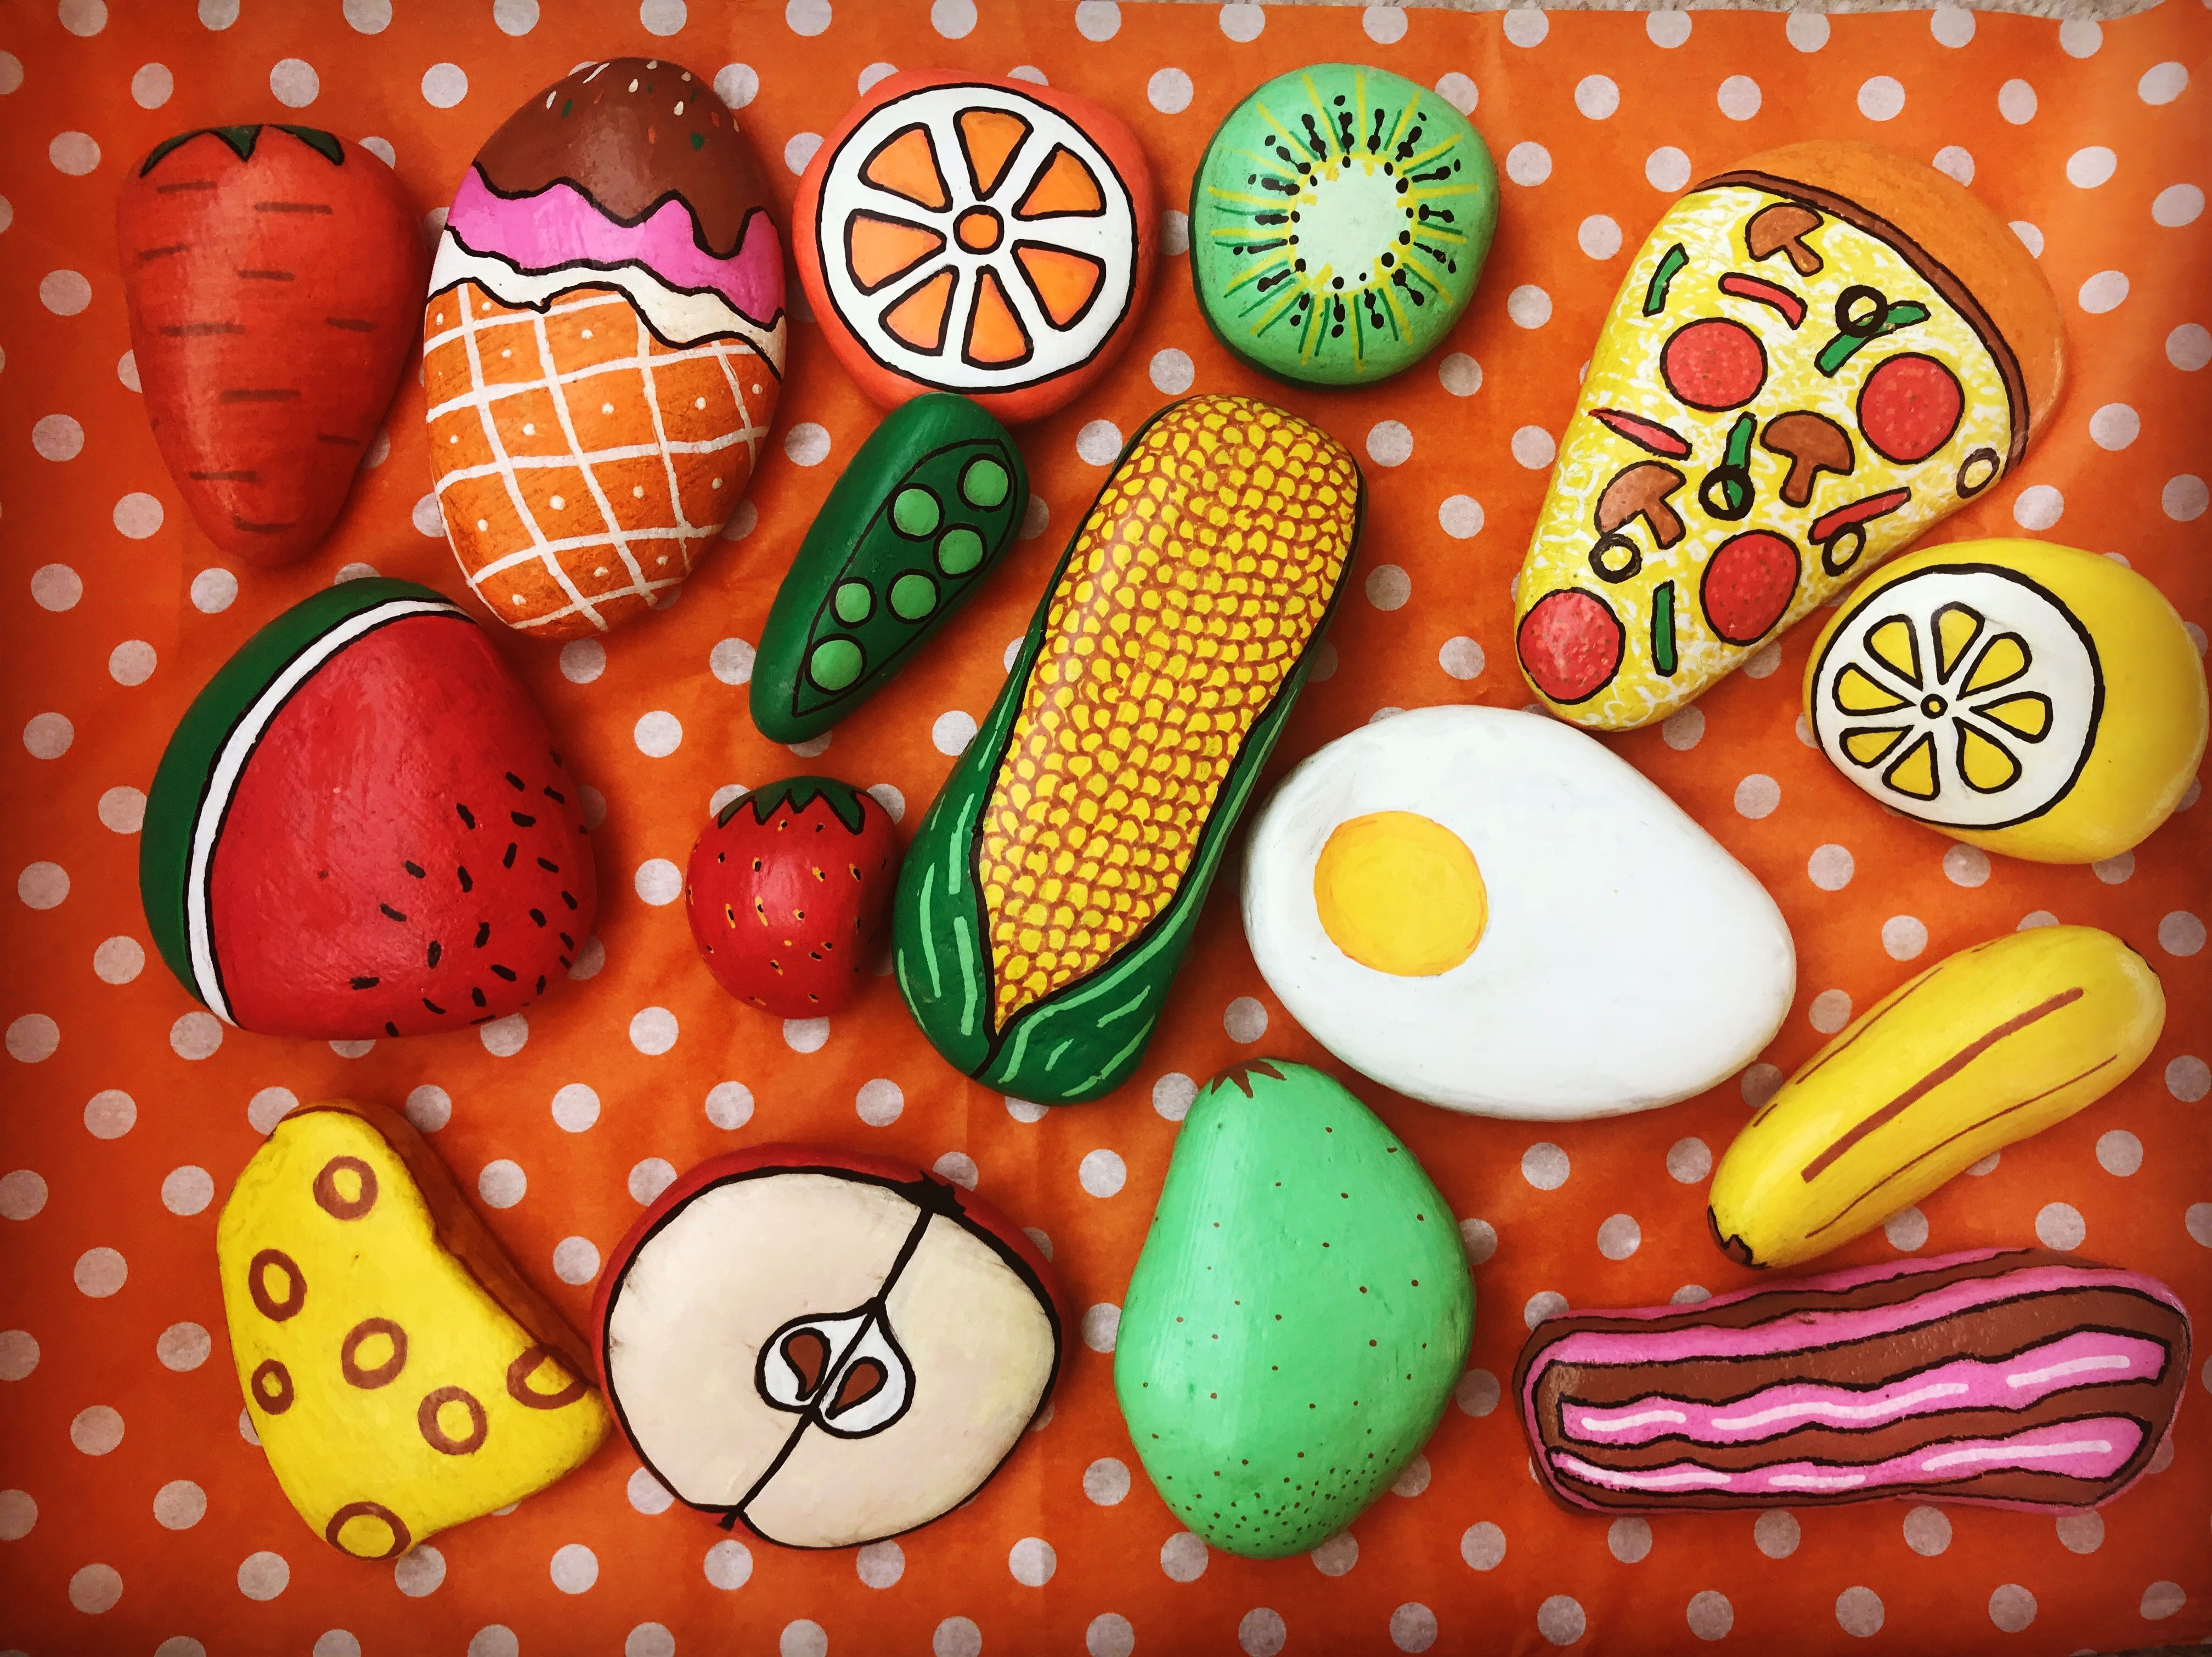 Mud kitchen pretend play food made using hand painted stones | Mud ...